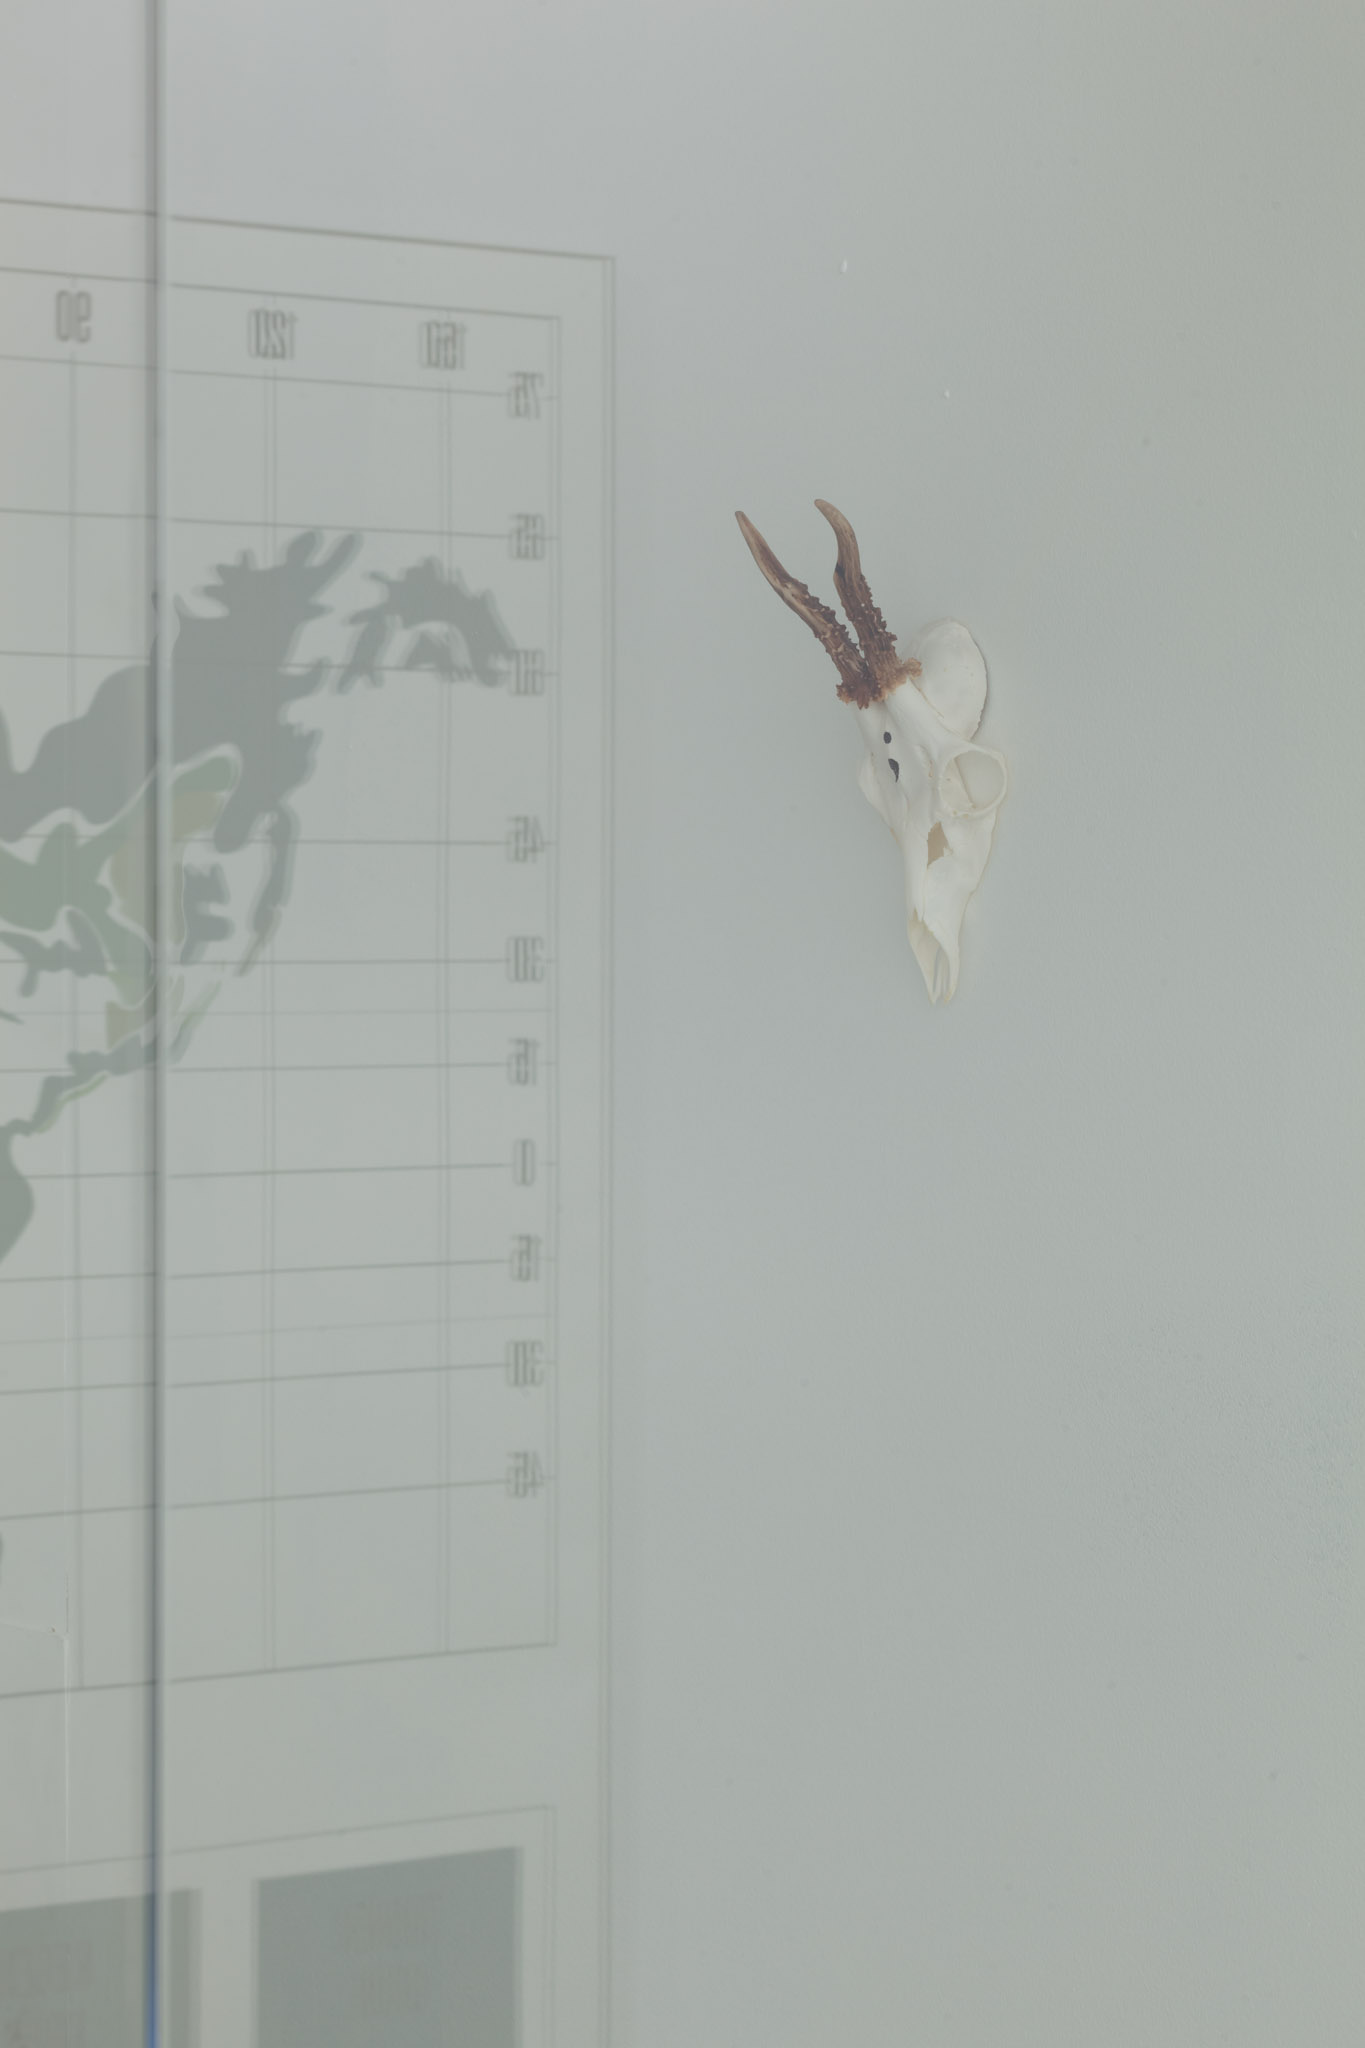 Nicolas Ceccaldi, Memory of Light, 2014, Deer Skull, Acrylic, 15 x 6,5 x 7 cm, 6 x 2.5 x 3 ins. Nuclear War: What's in it for you? Curated by Will Benedict , K P Brehmer | Nicolas Ceccaldi | Gaylen Gerber | Suzy Lake | Ludmila Seefried-Matějková